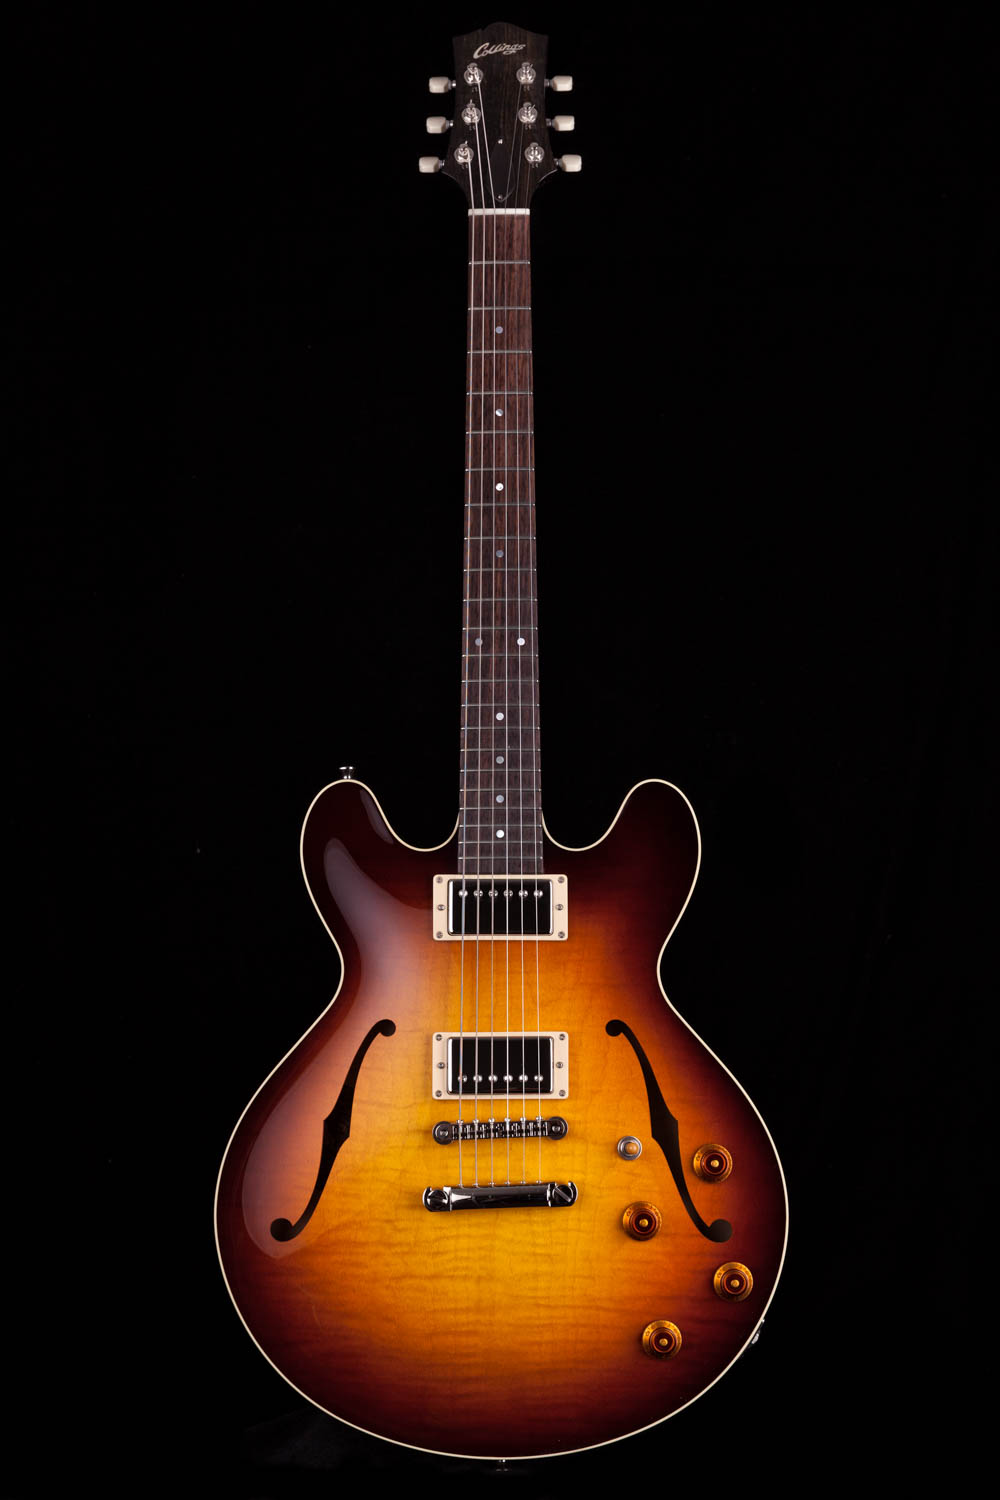 collings i 35 lc semi hollow electric guitar. Black Bedroom Furniture Sets. Home Design Ideas